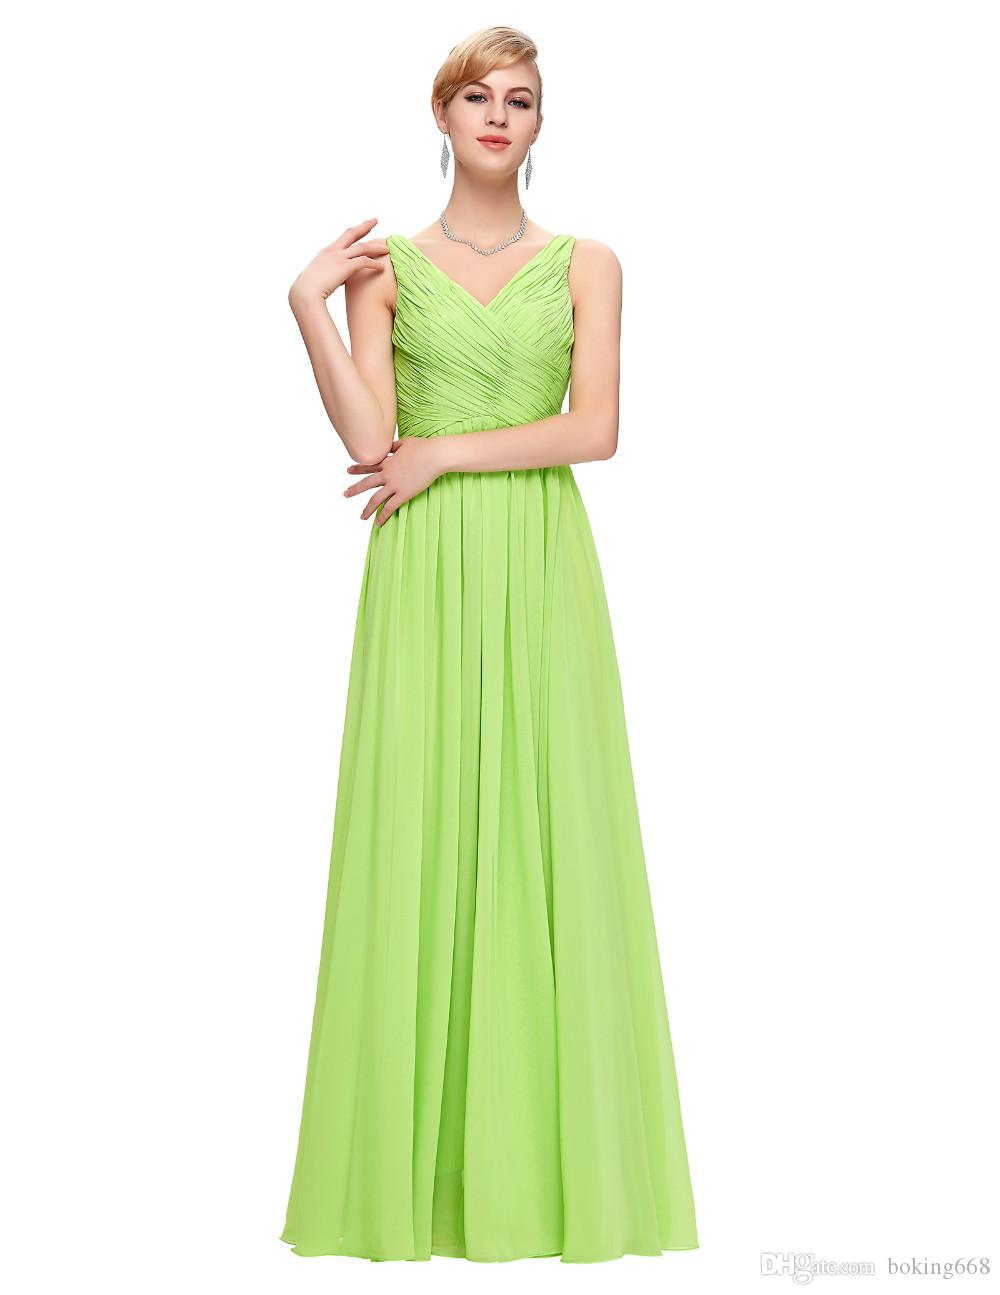 dfd35a82cf Green Sleeveless Long Prom Dresses 2019 Deep V Neck Ruched Spaghetti Strap  Prom Dress A Line Sexy Formal Evening Dresses Custom Made Cheap Beautiful  Prom ...